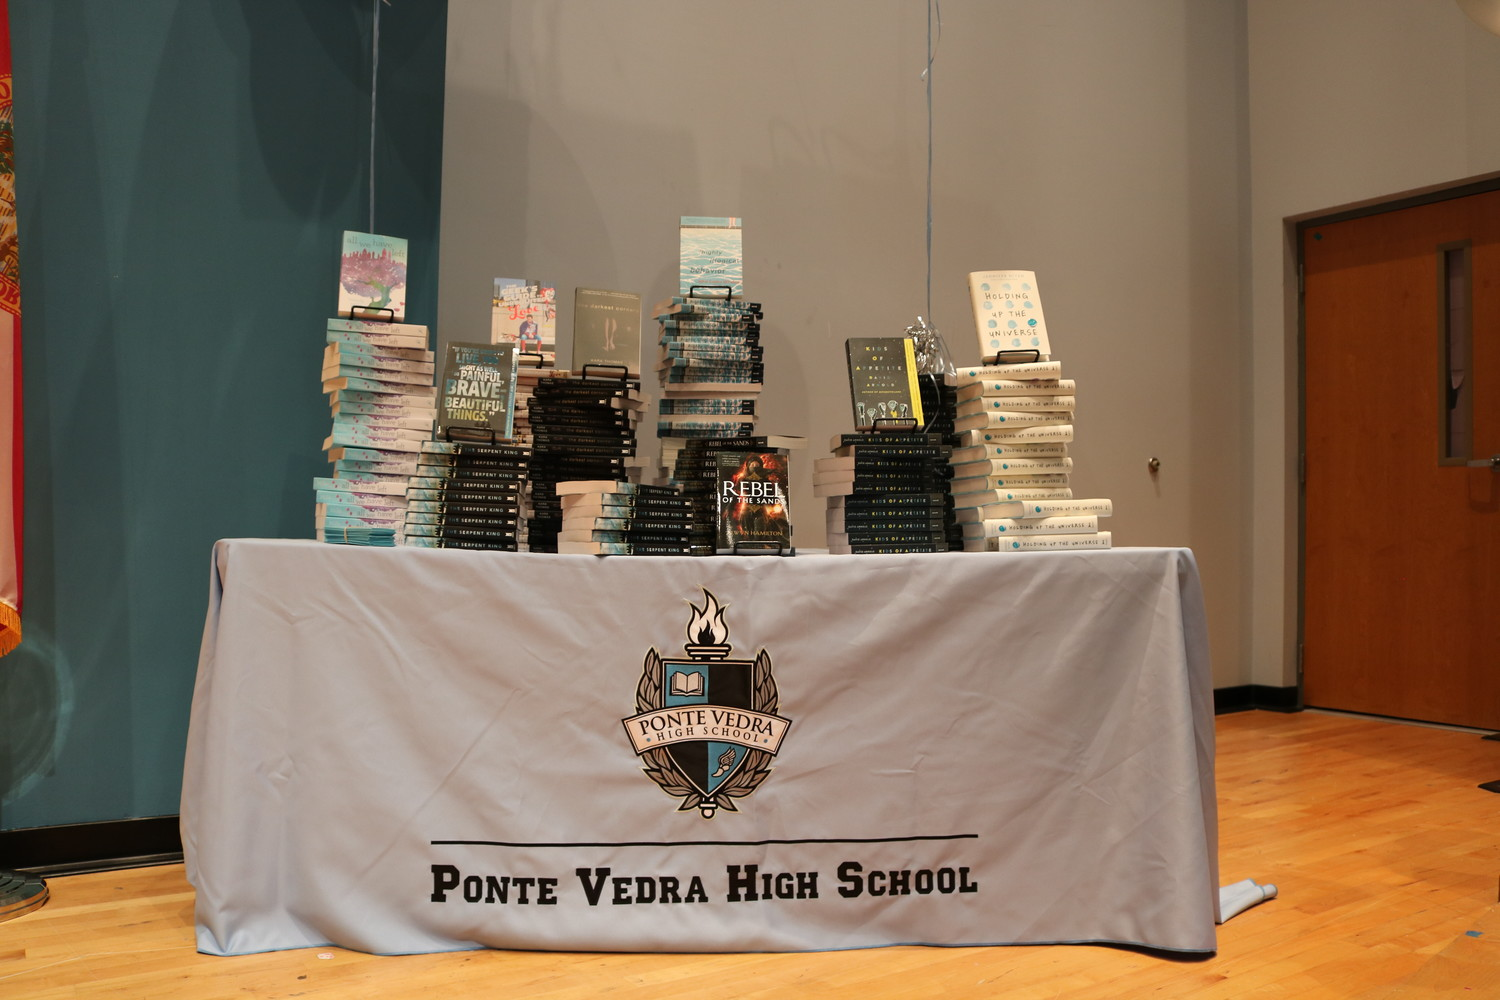 A stand featuring books available for Ponte Vedra High School students at the school library.